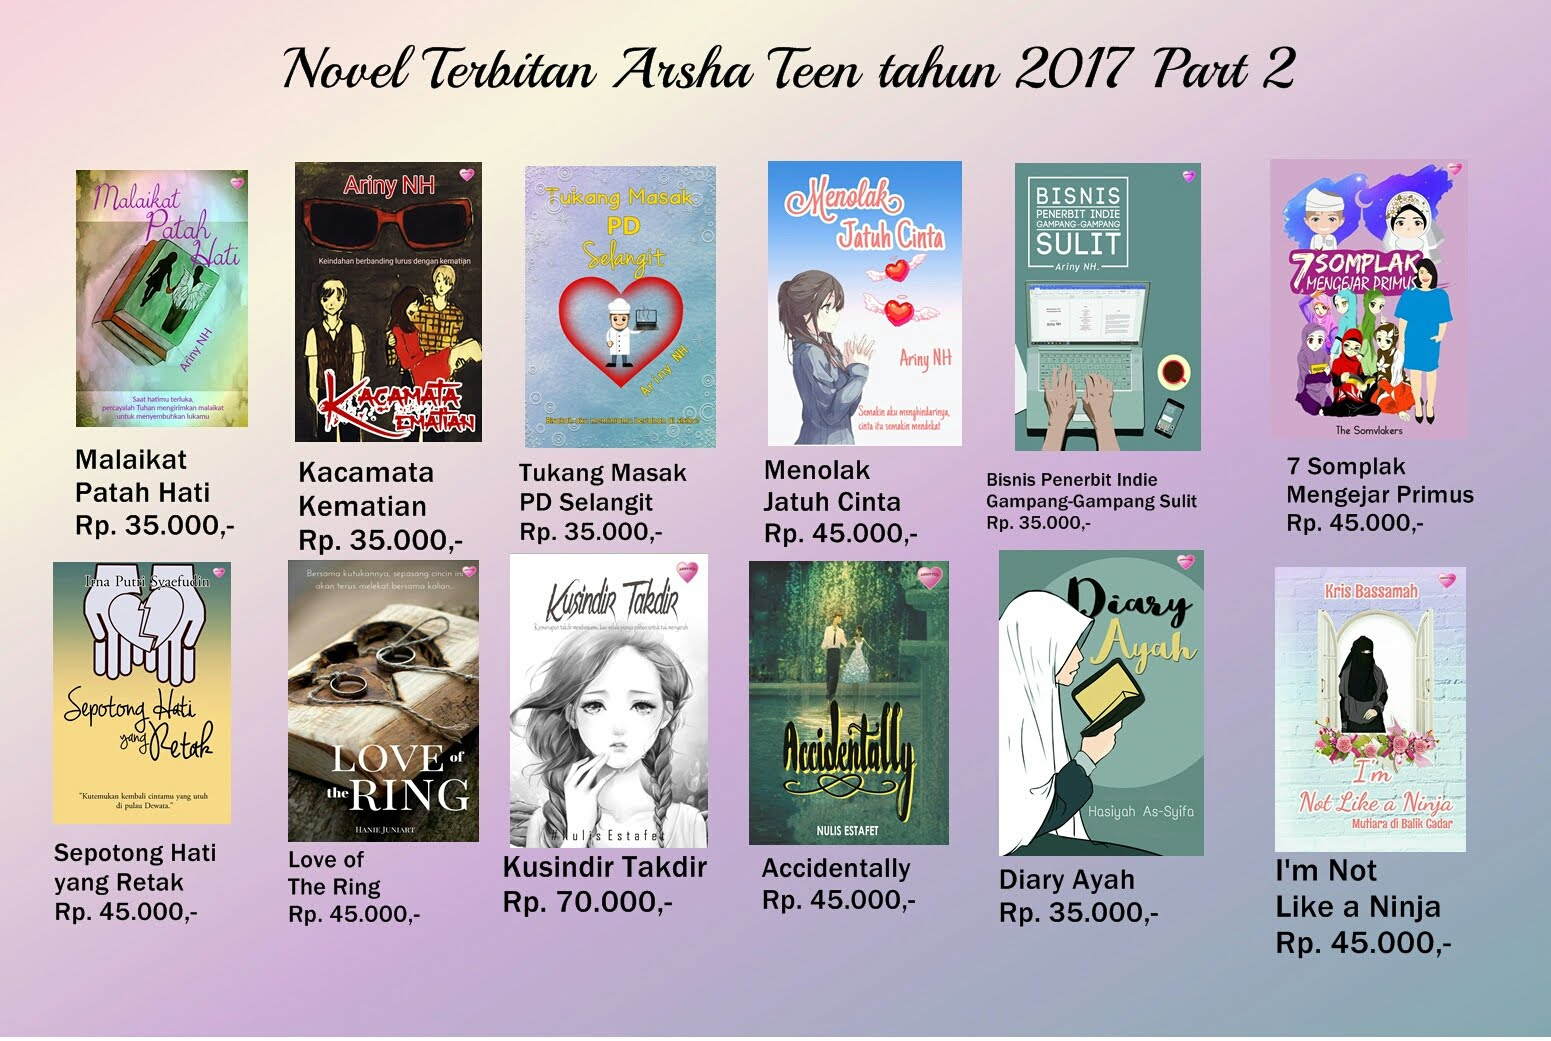 Novel Terbitan Arsha Teen Part II